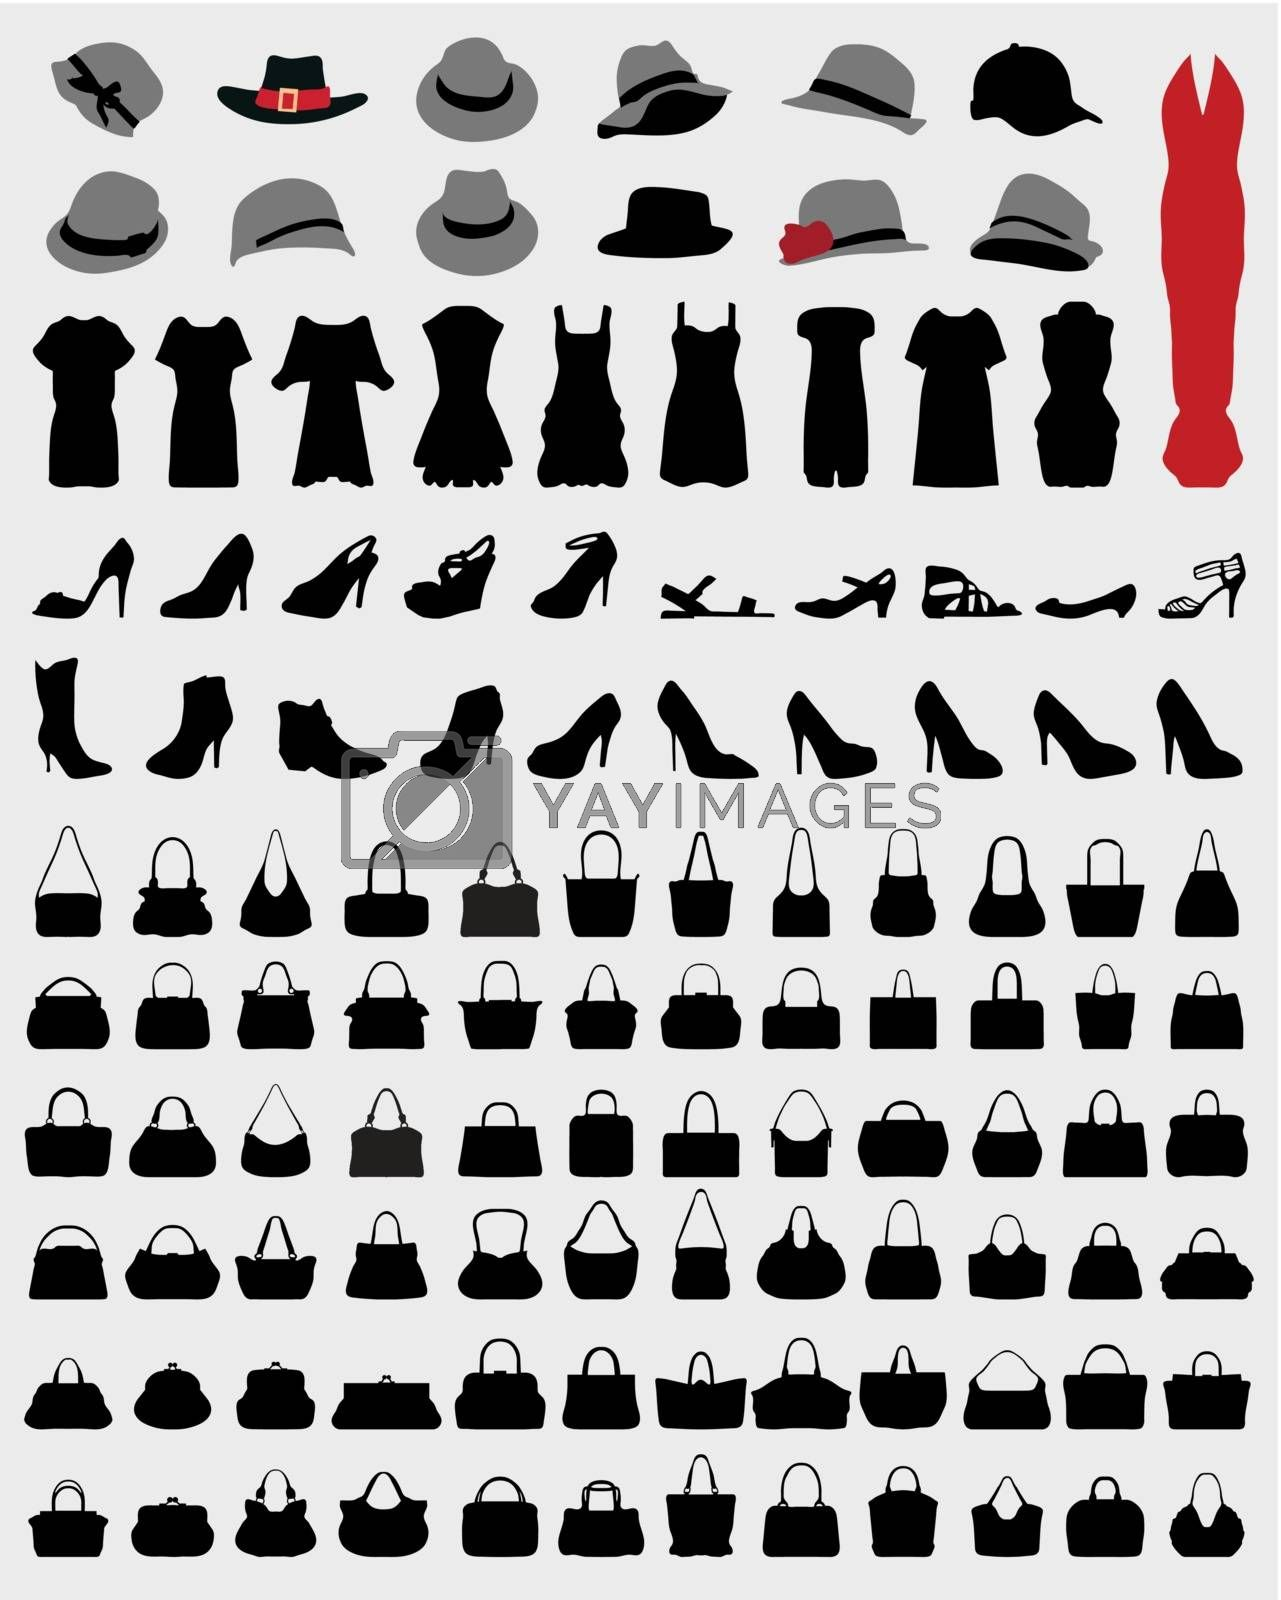 Silhouettes of women's  hats, dress, handbags and shoes